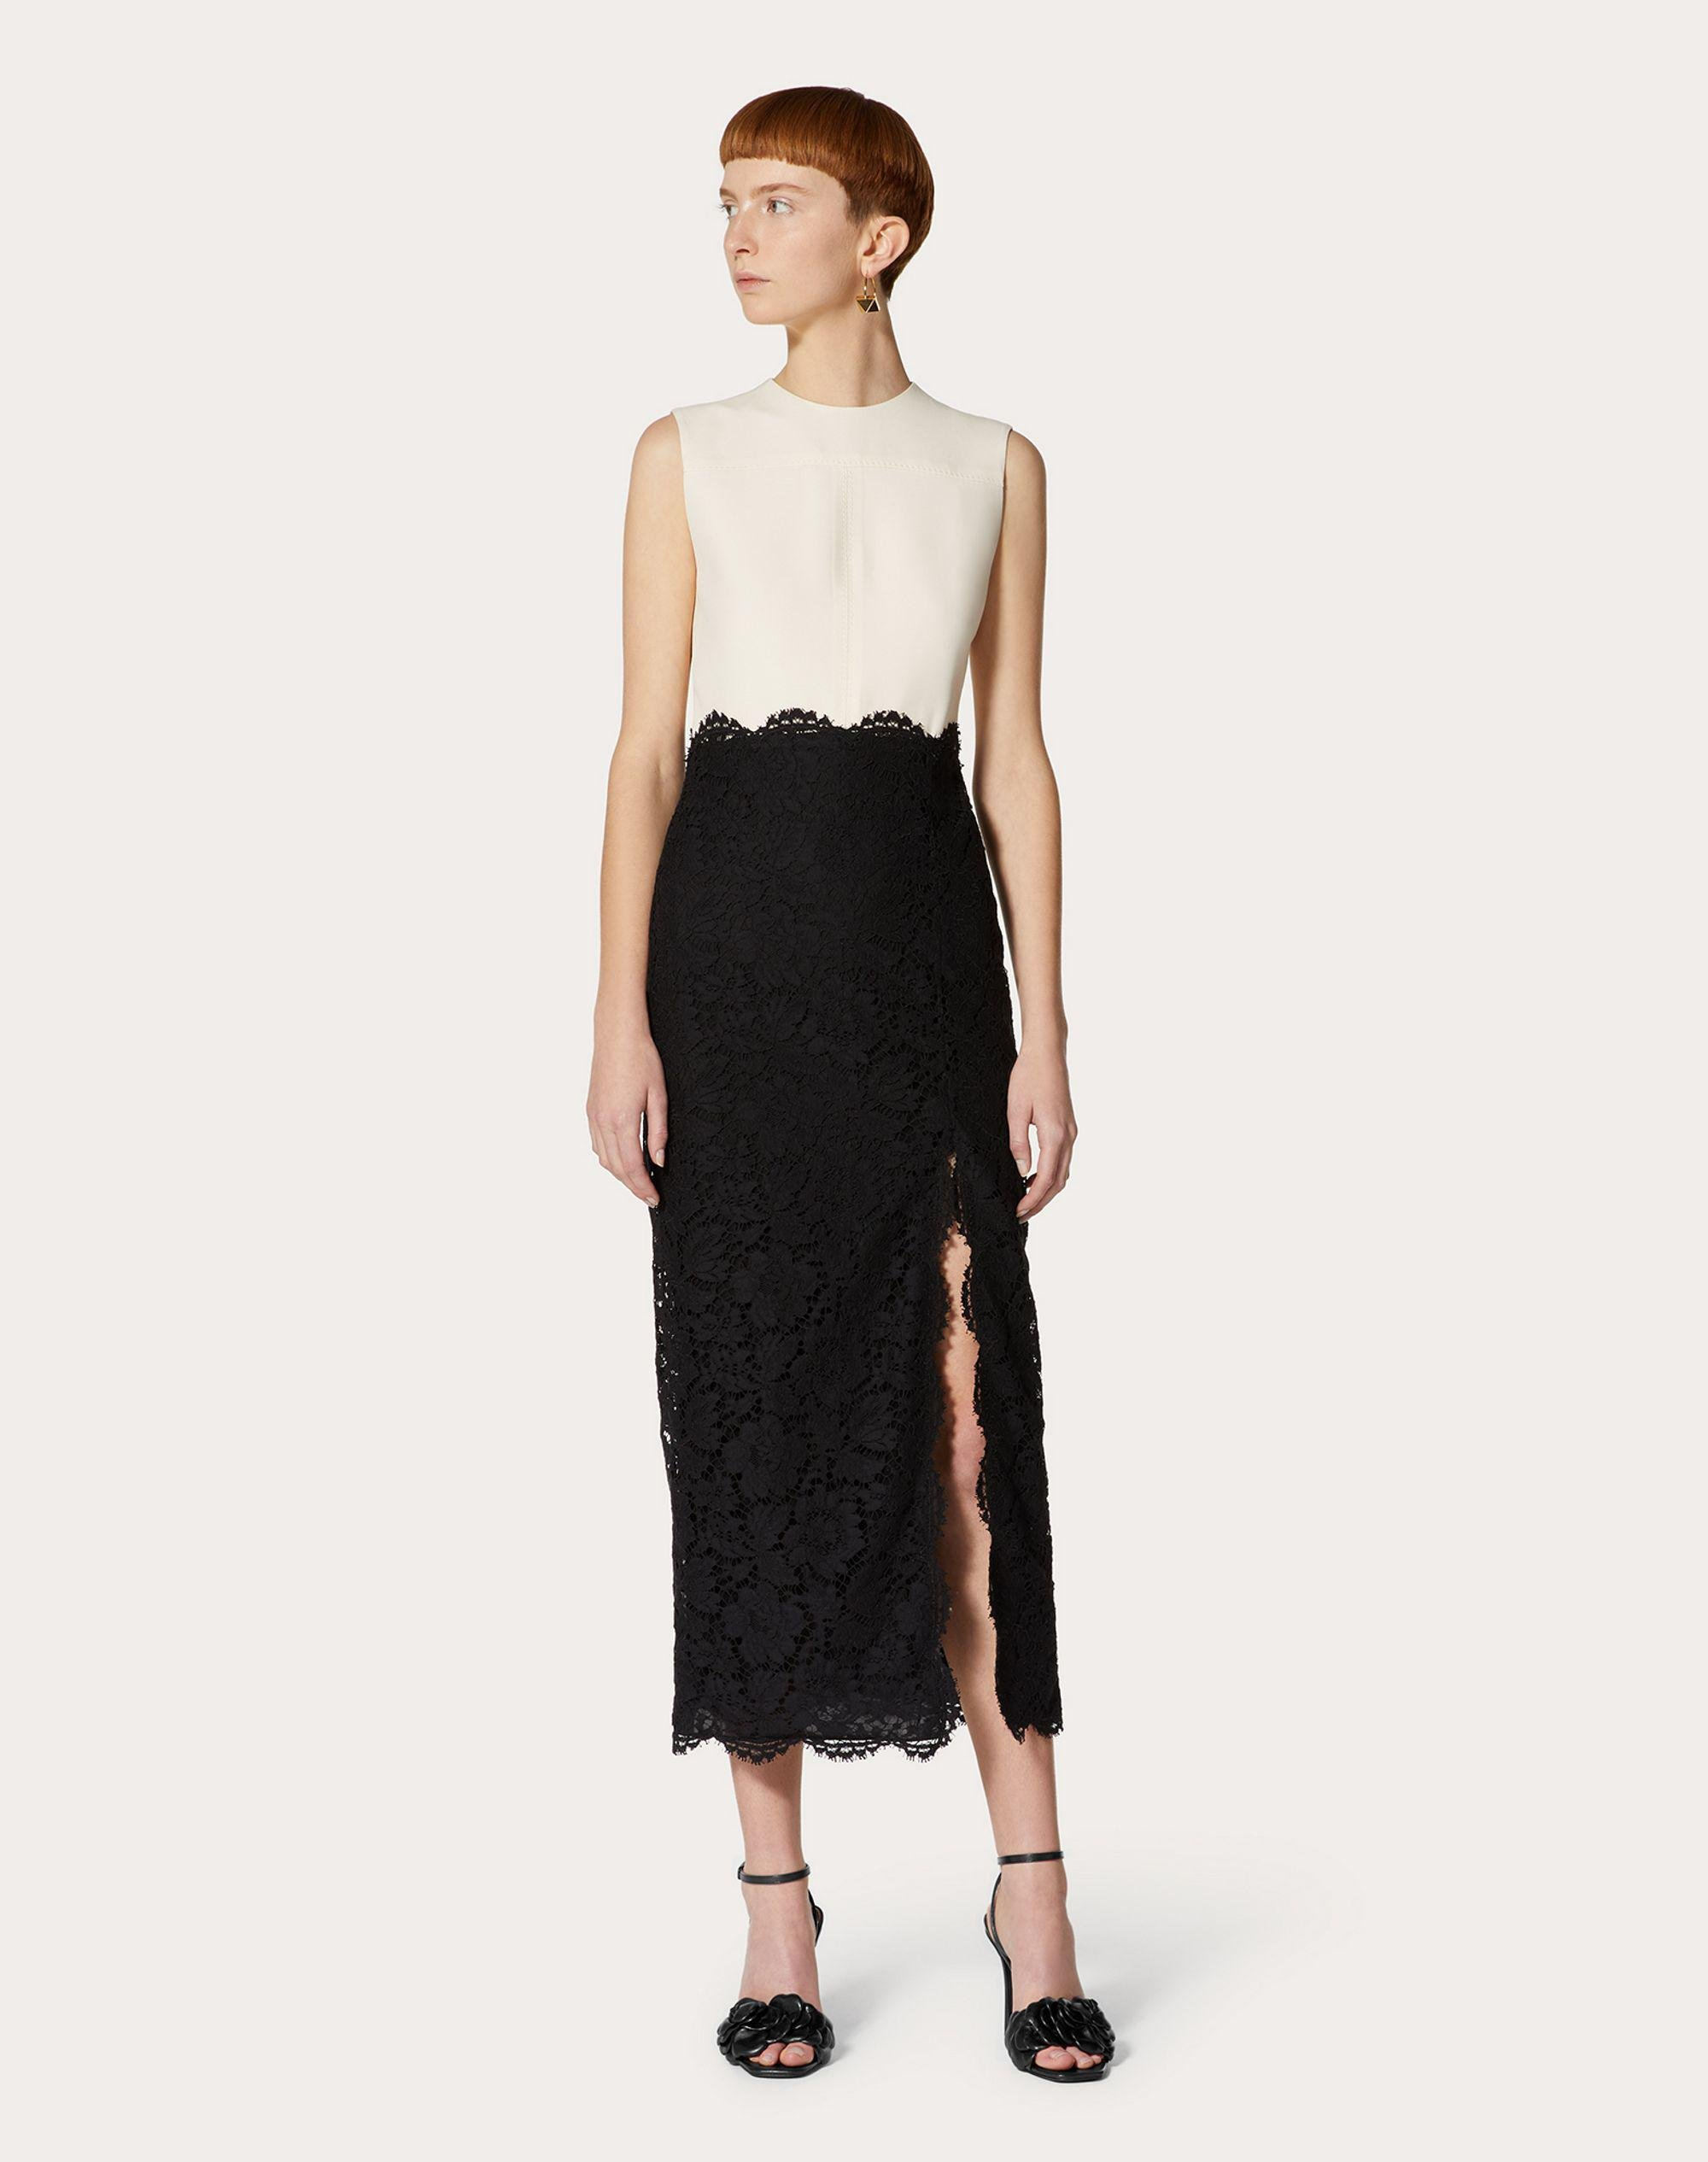 CREPE COUTURE AND HEAVY LACE DRESS 1